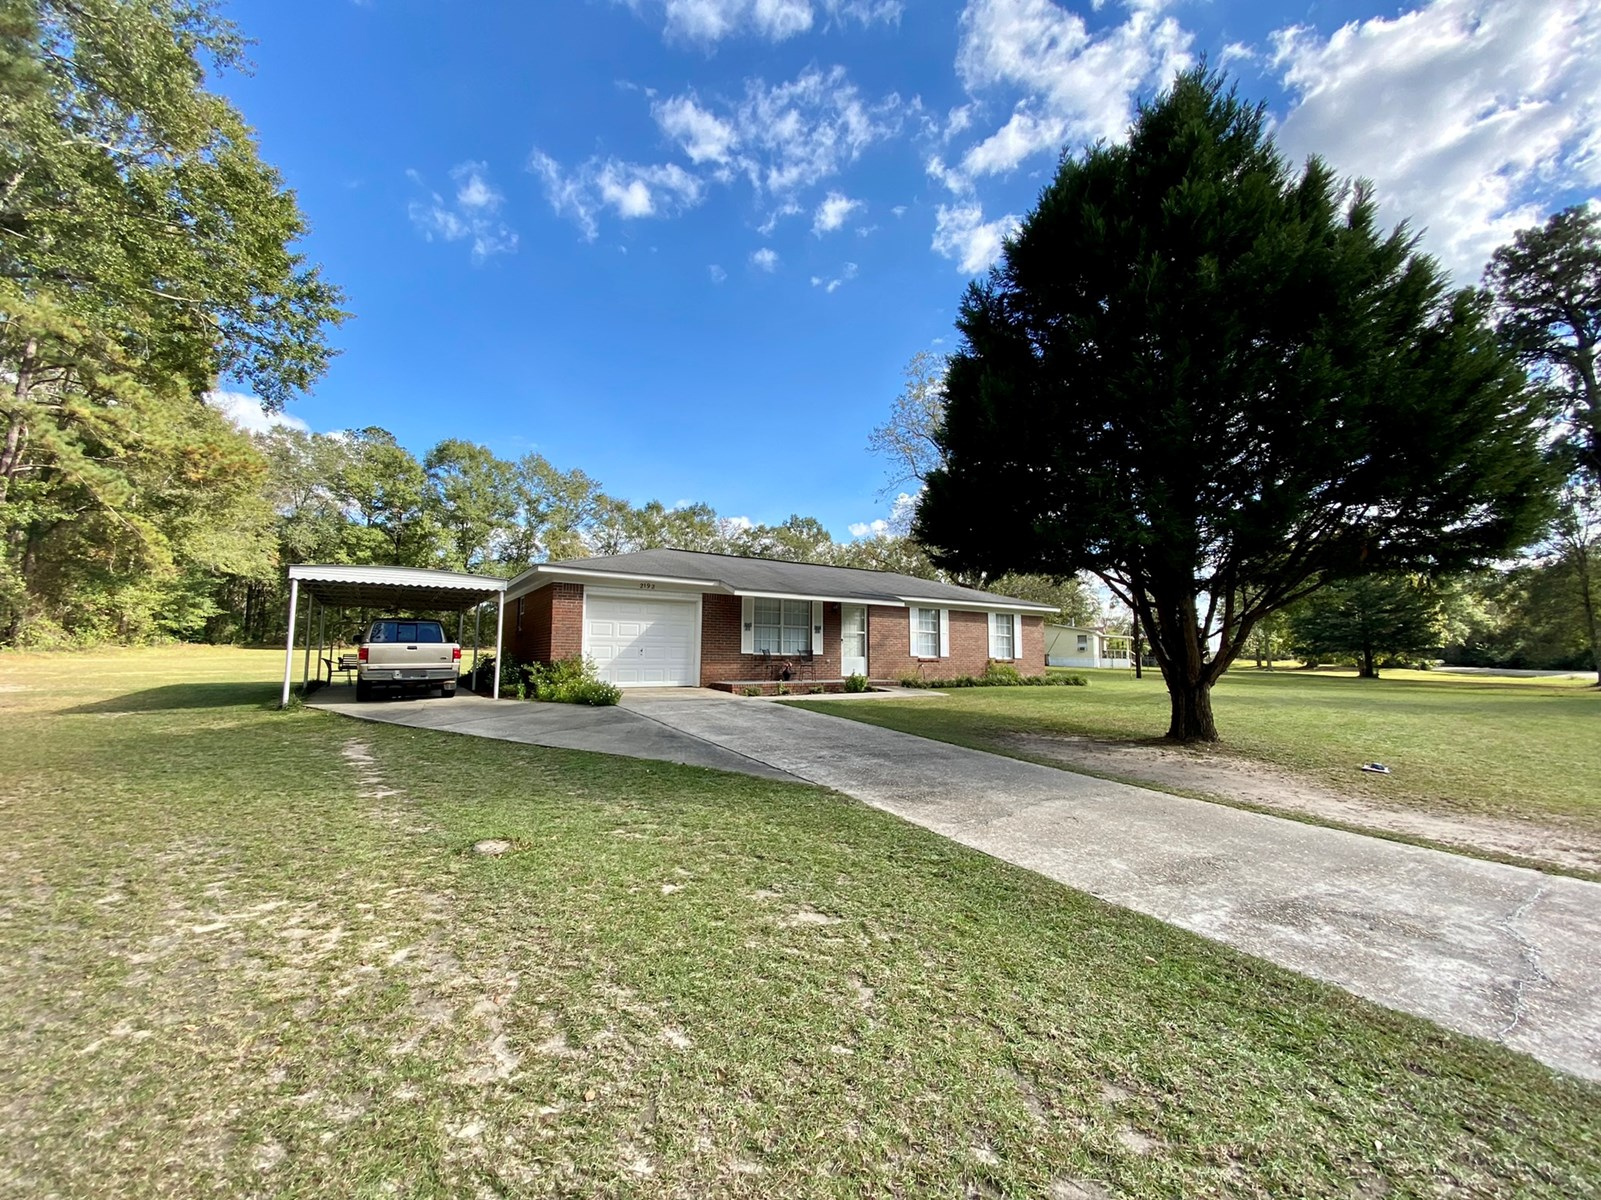 Home for Sale in Slocomb, Alabama